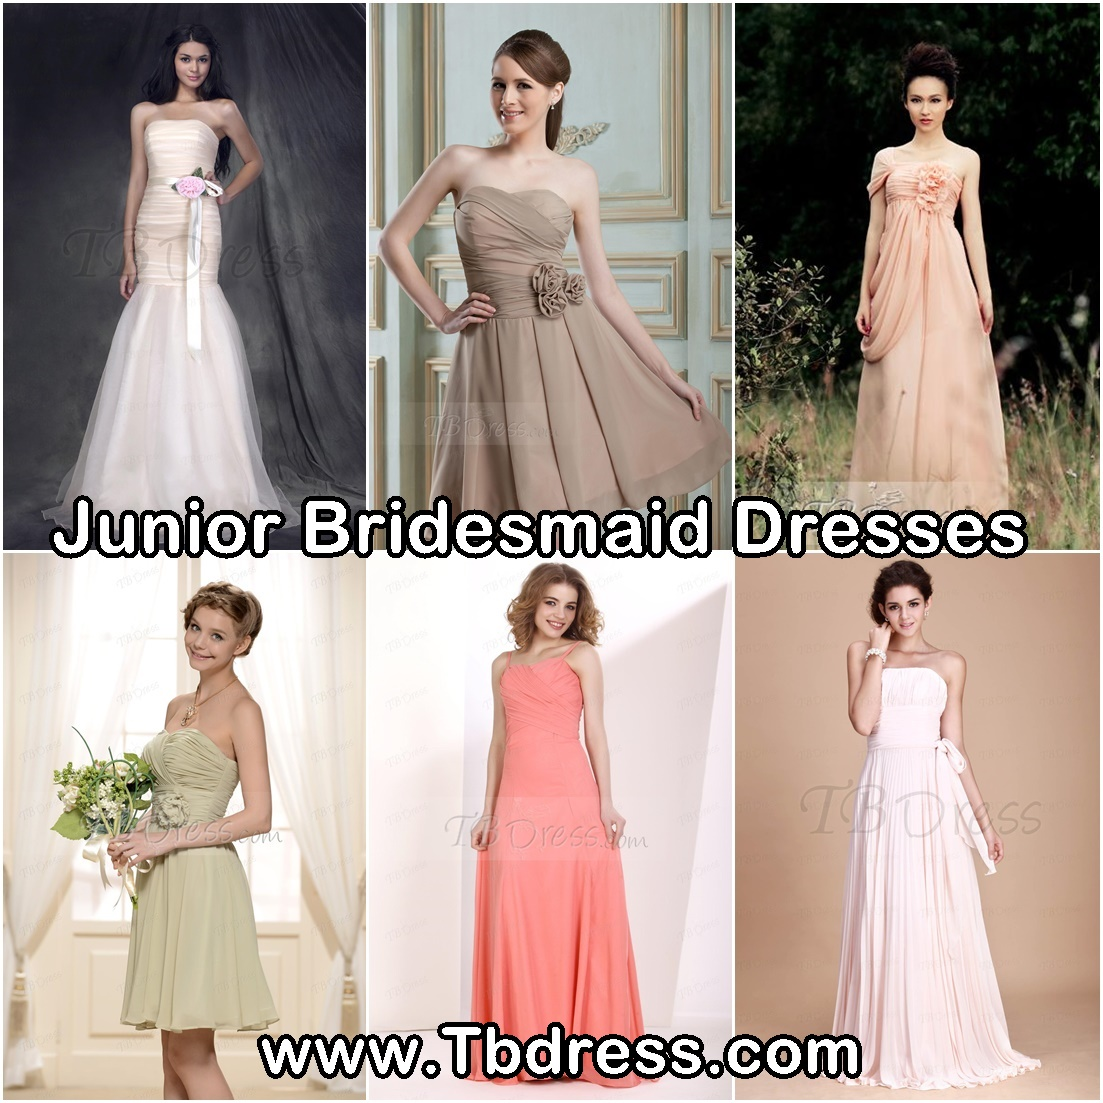 http://www.tbdress.com/Cheap-Junior-Bridesmaid-Dresses-101142